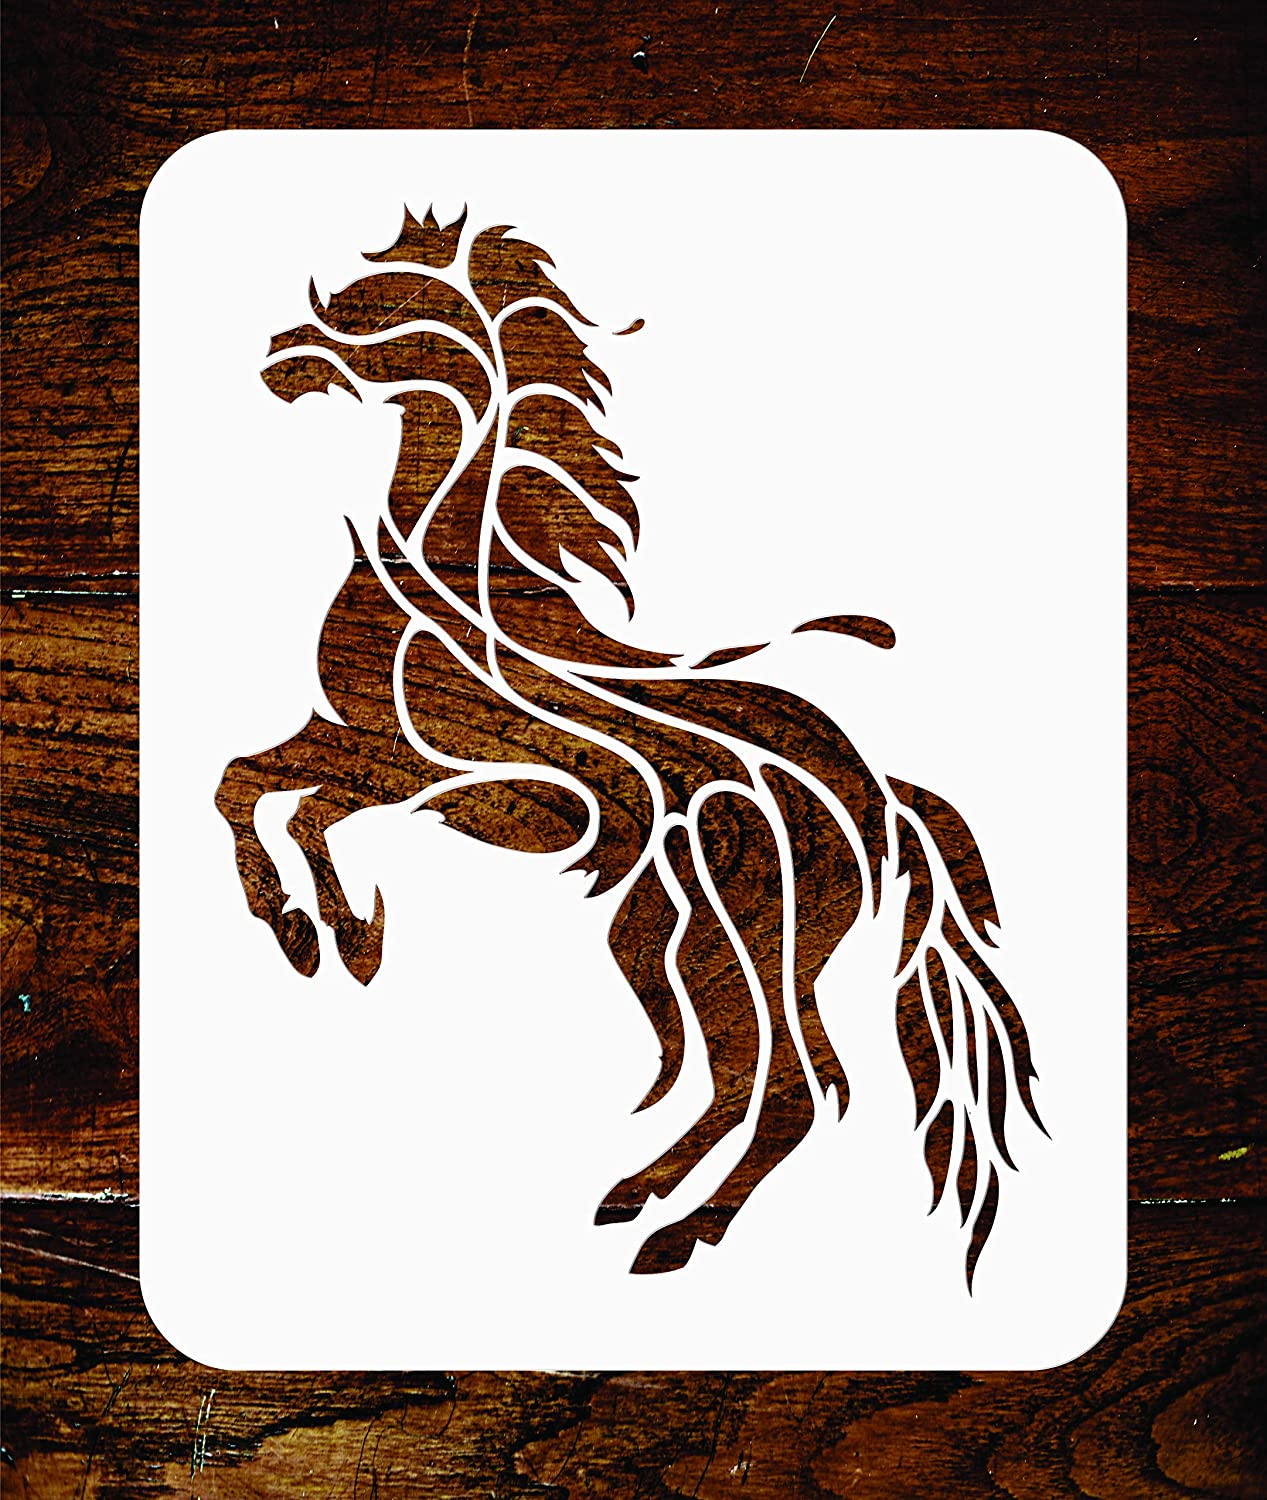 Horse Stencil Use on Paper Projects Scrapbook Journal Walls Floors Fabric Furniture Glass Wood etc. Reusable Geometric Decor Stylized Pet Animal Wall Stencil Template 11.5 x 15 cm